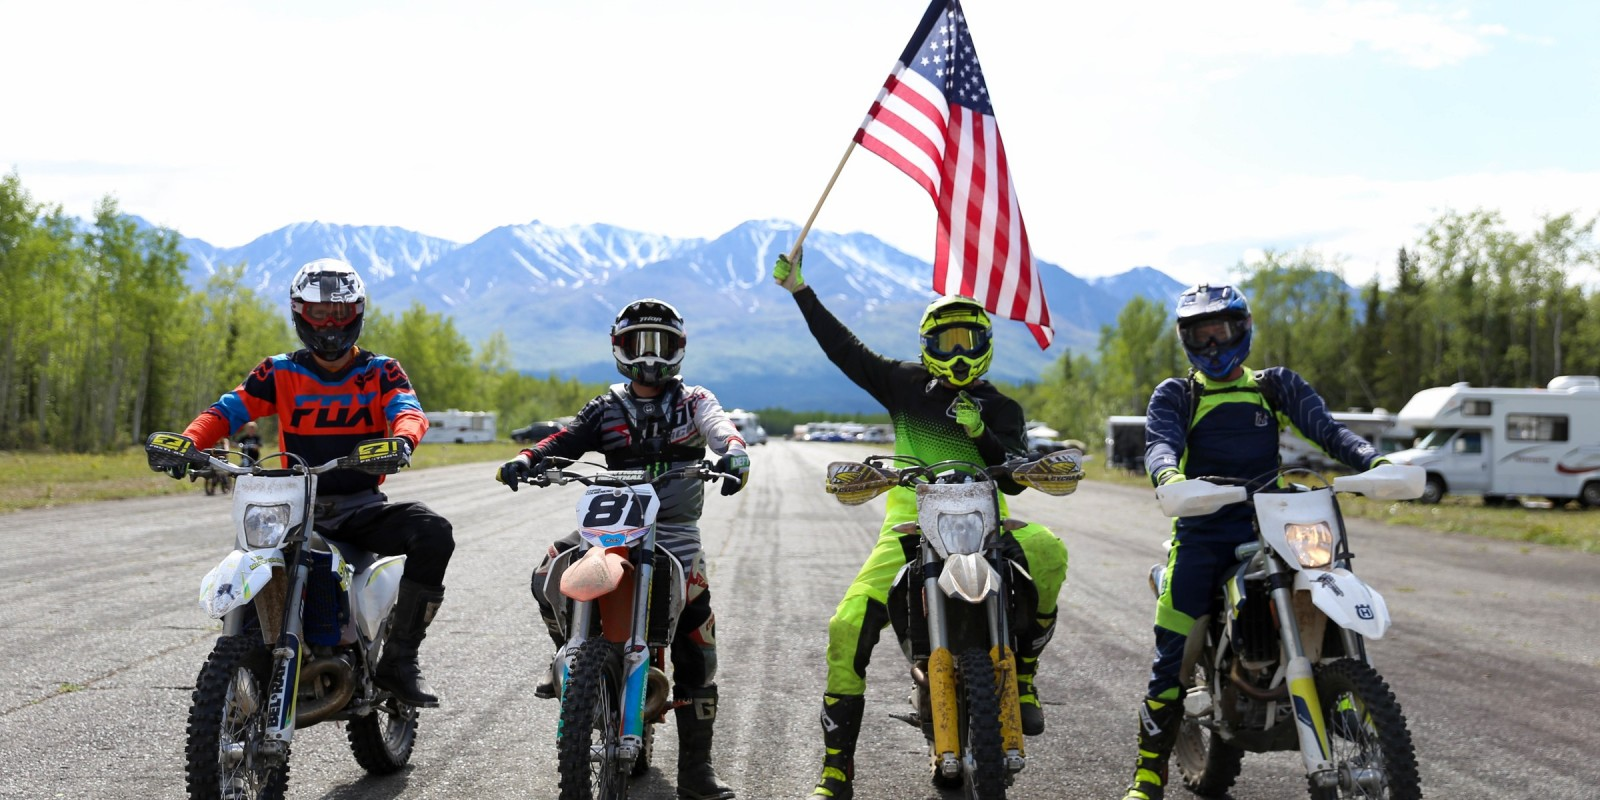 Warrior Built member Chris Colmenero sits on his dirt bike next to two other active duty service members and a veteran.